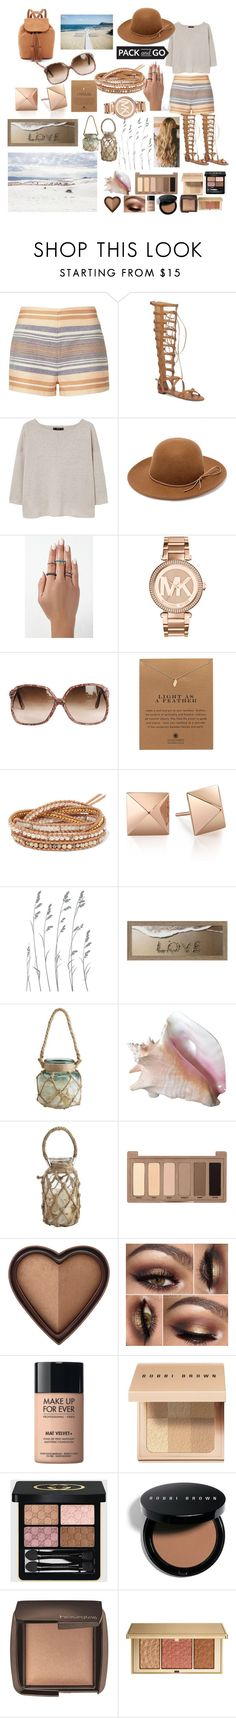 """""""pack&go mexico"""" by manderzlmao ❤ liked on Polyvore featuring Solid & Striped, Vince Camuto, MANGO, RHYTHM, Michael Kors, Dogeared, Chan Luu, Dot & Bo, Pier 1 Imports and Urban Decay"""